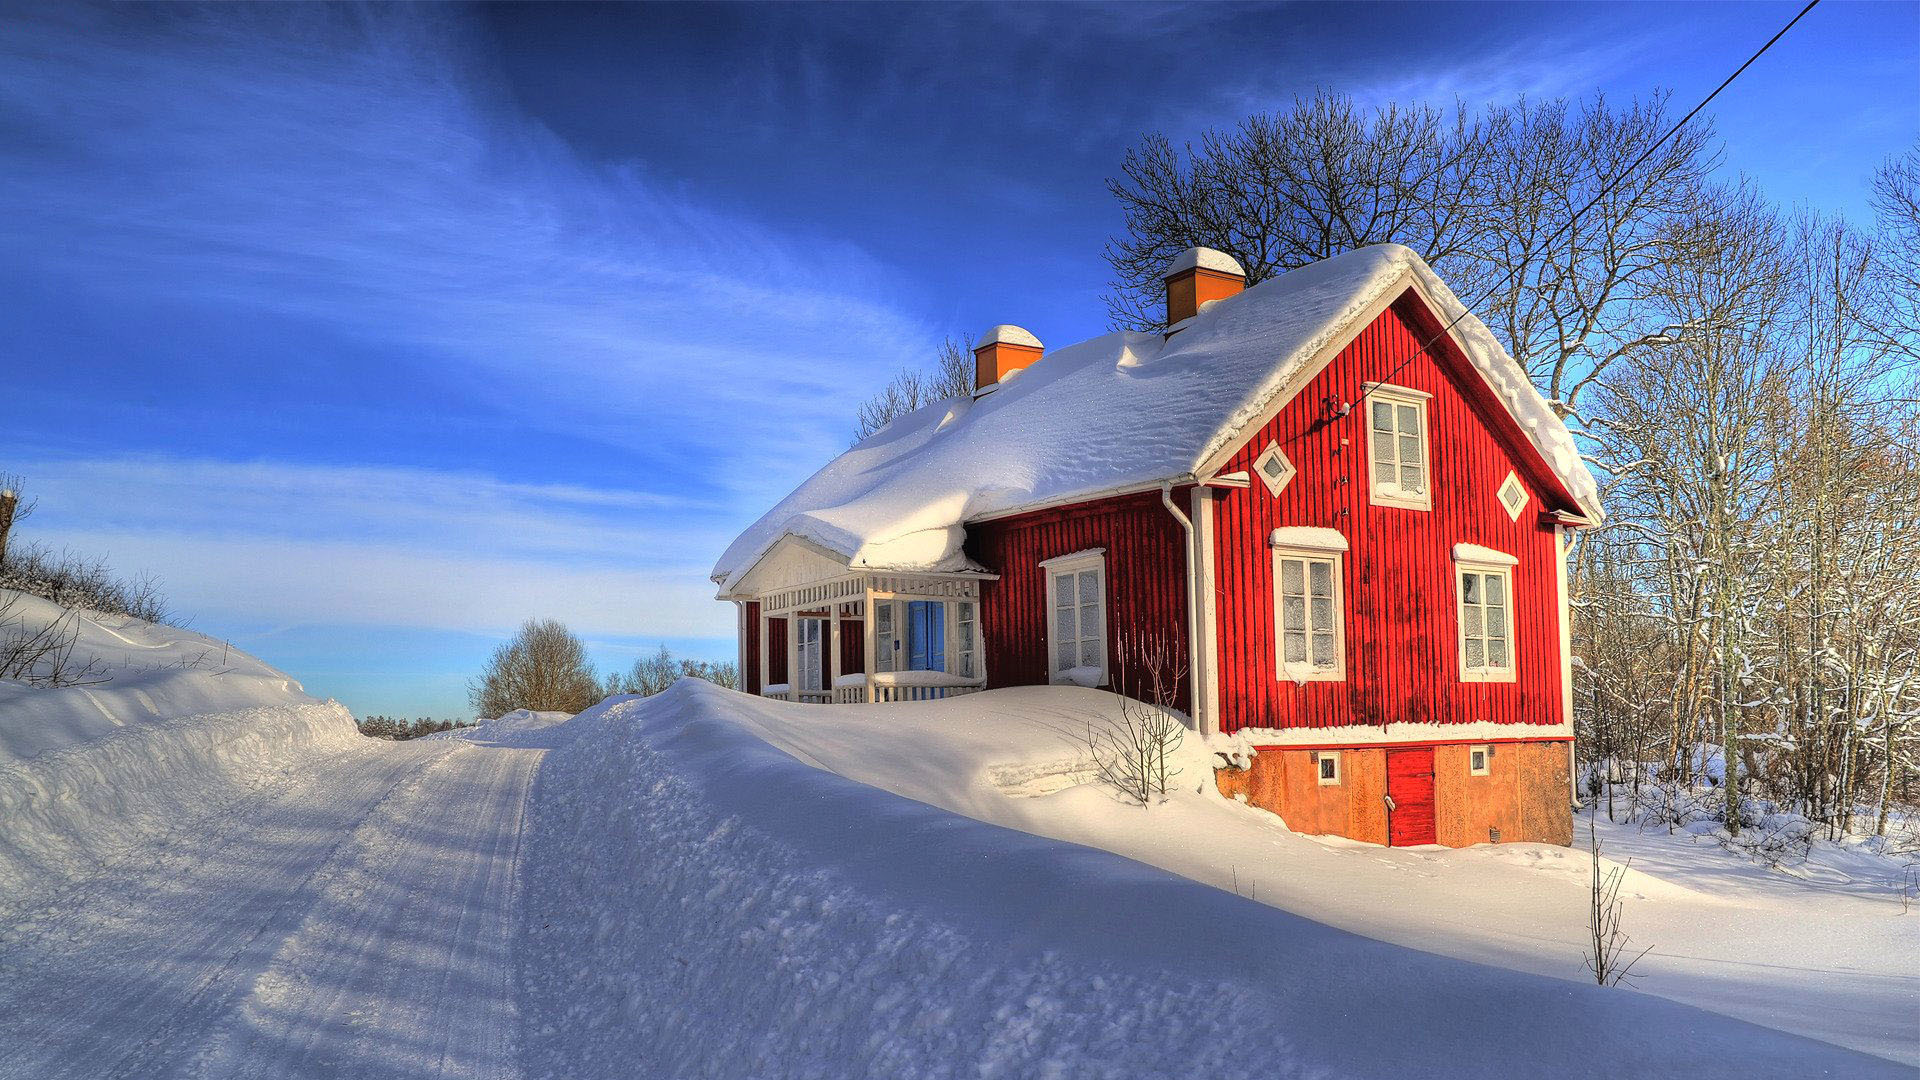 swedish_winter_house_001.jpg